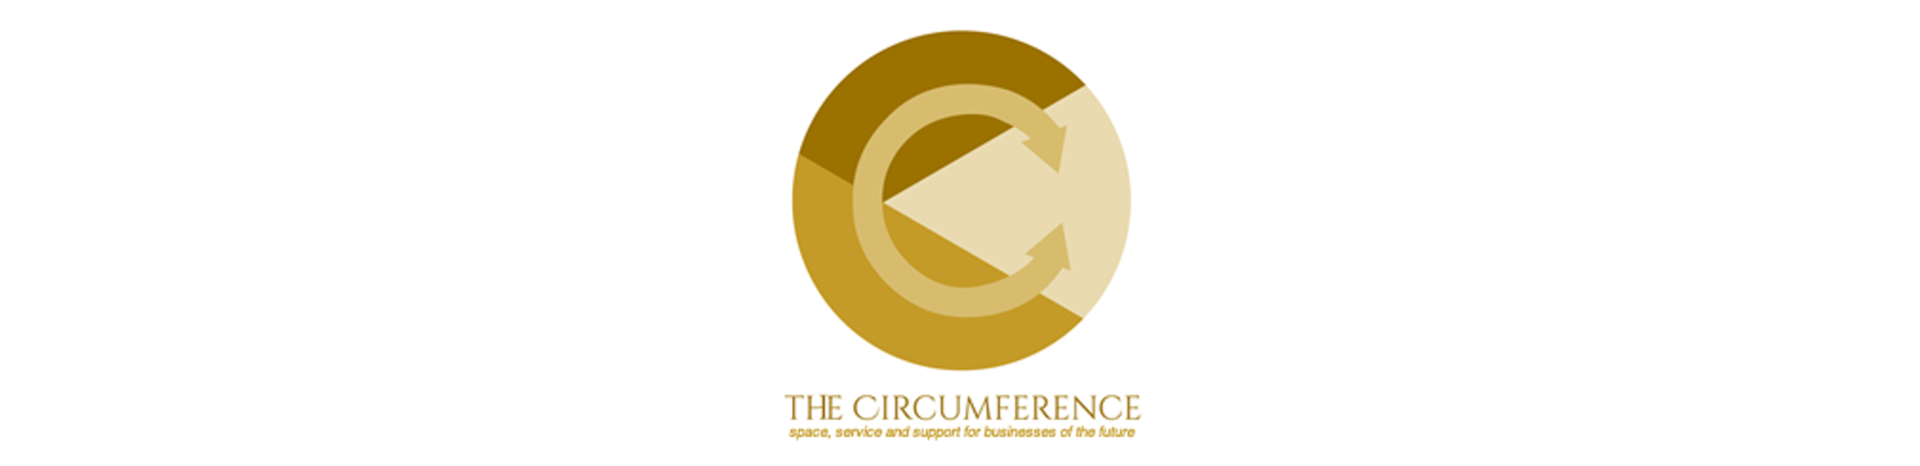 The Circumference Lagos Read Reviews Online